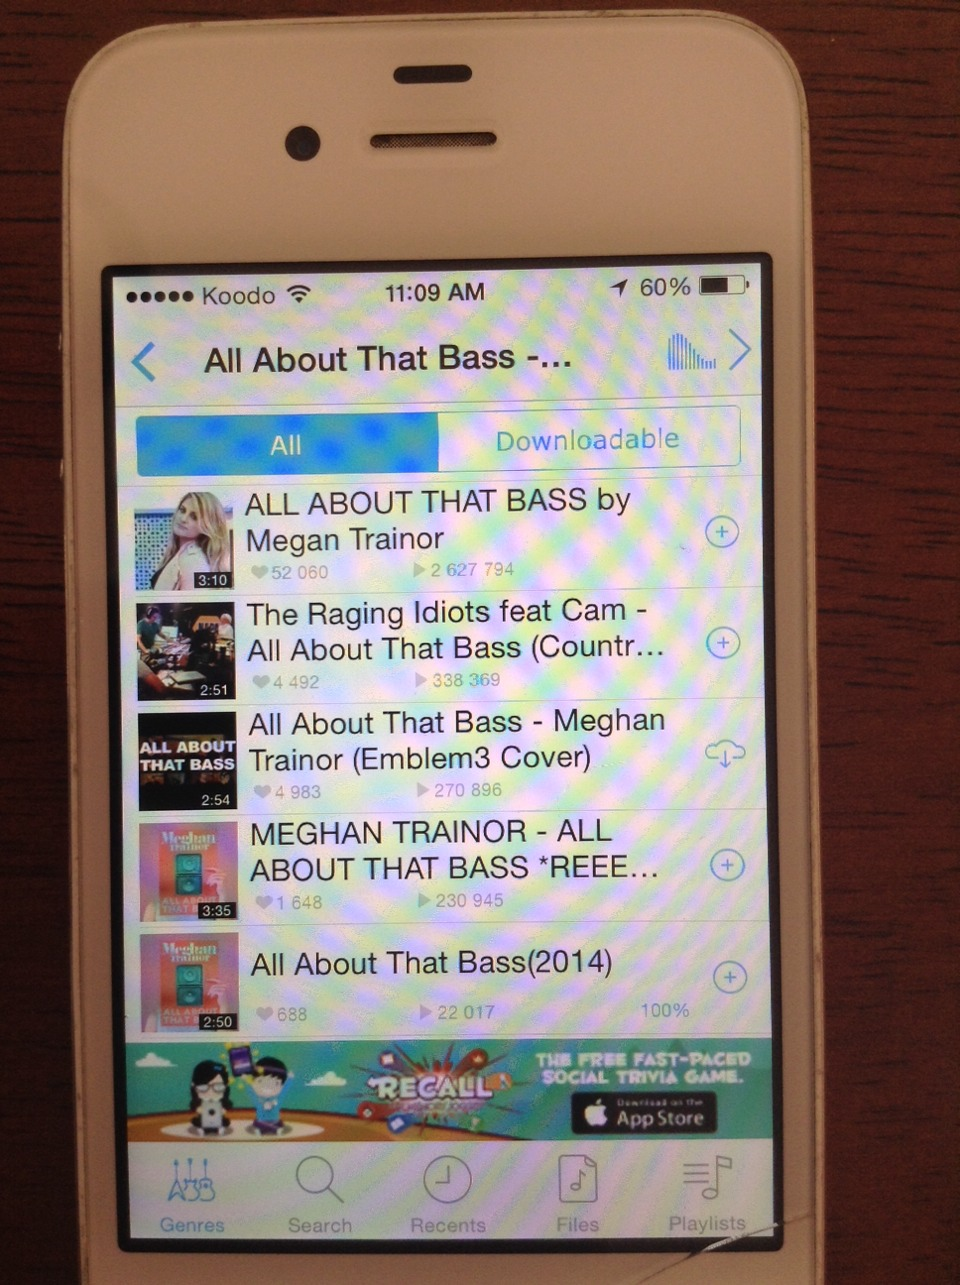 I clicked on my favorite song; all about that bass. Now in the picture, press the tab Downloadable if you want to be able to listen to the song without internet.